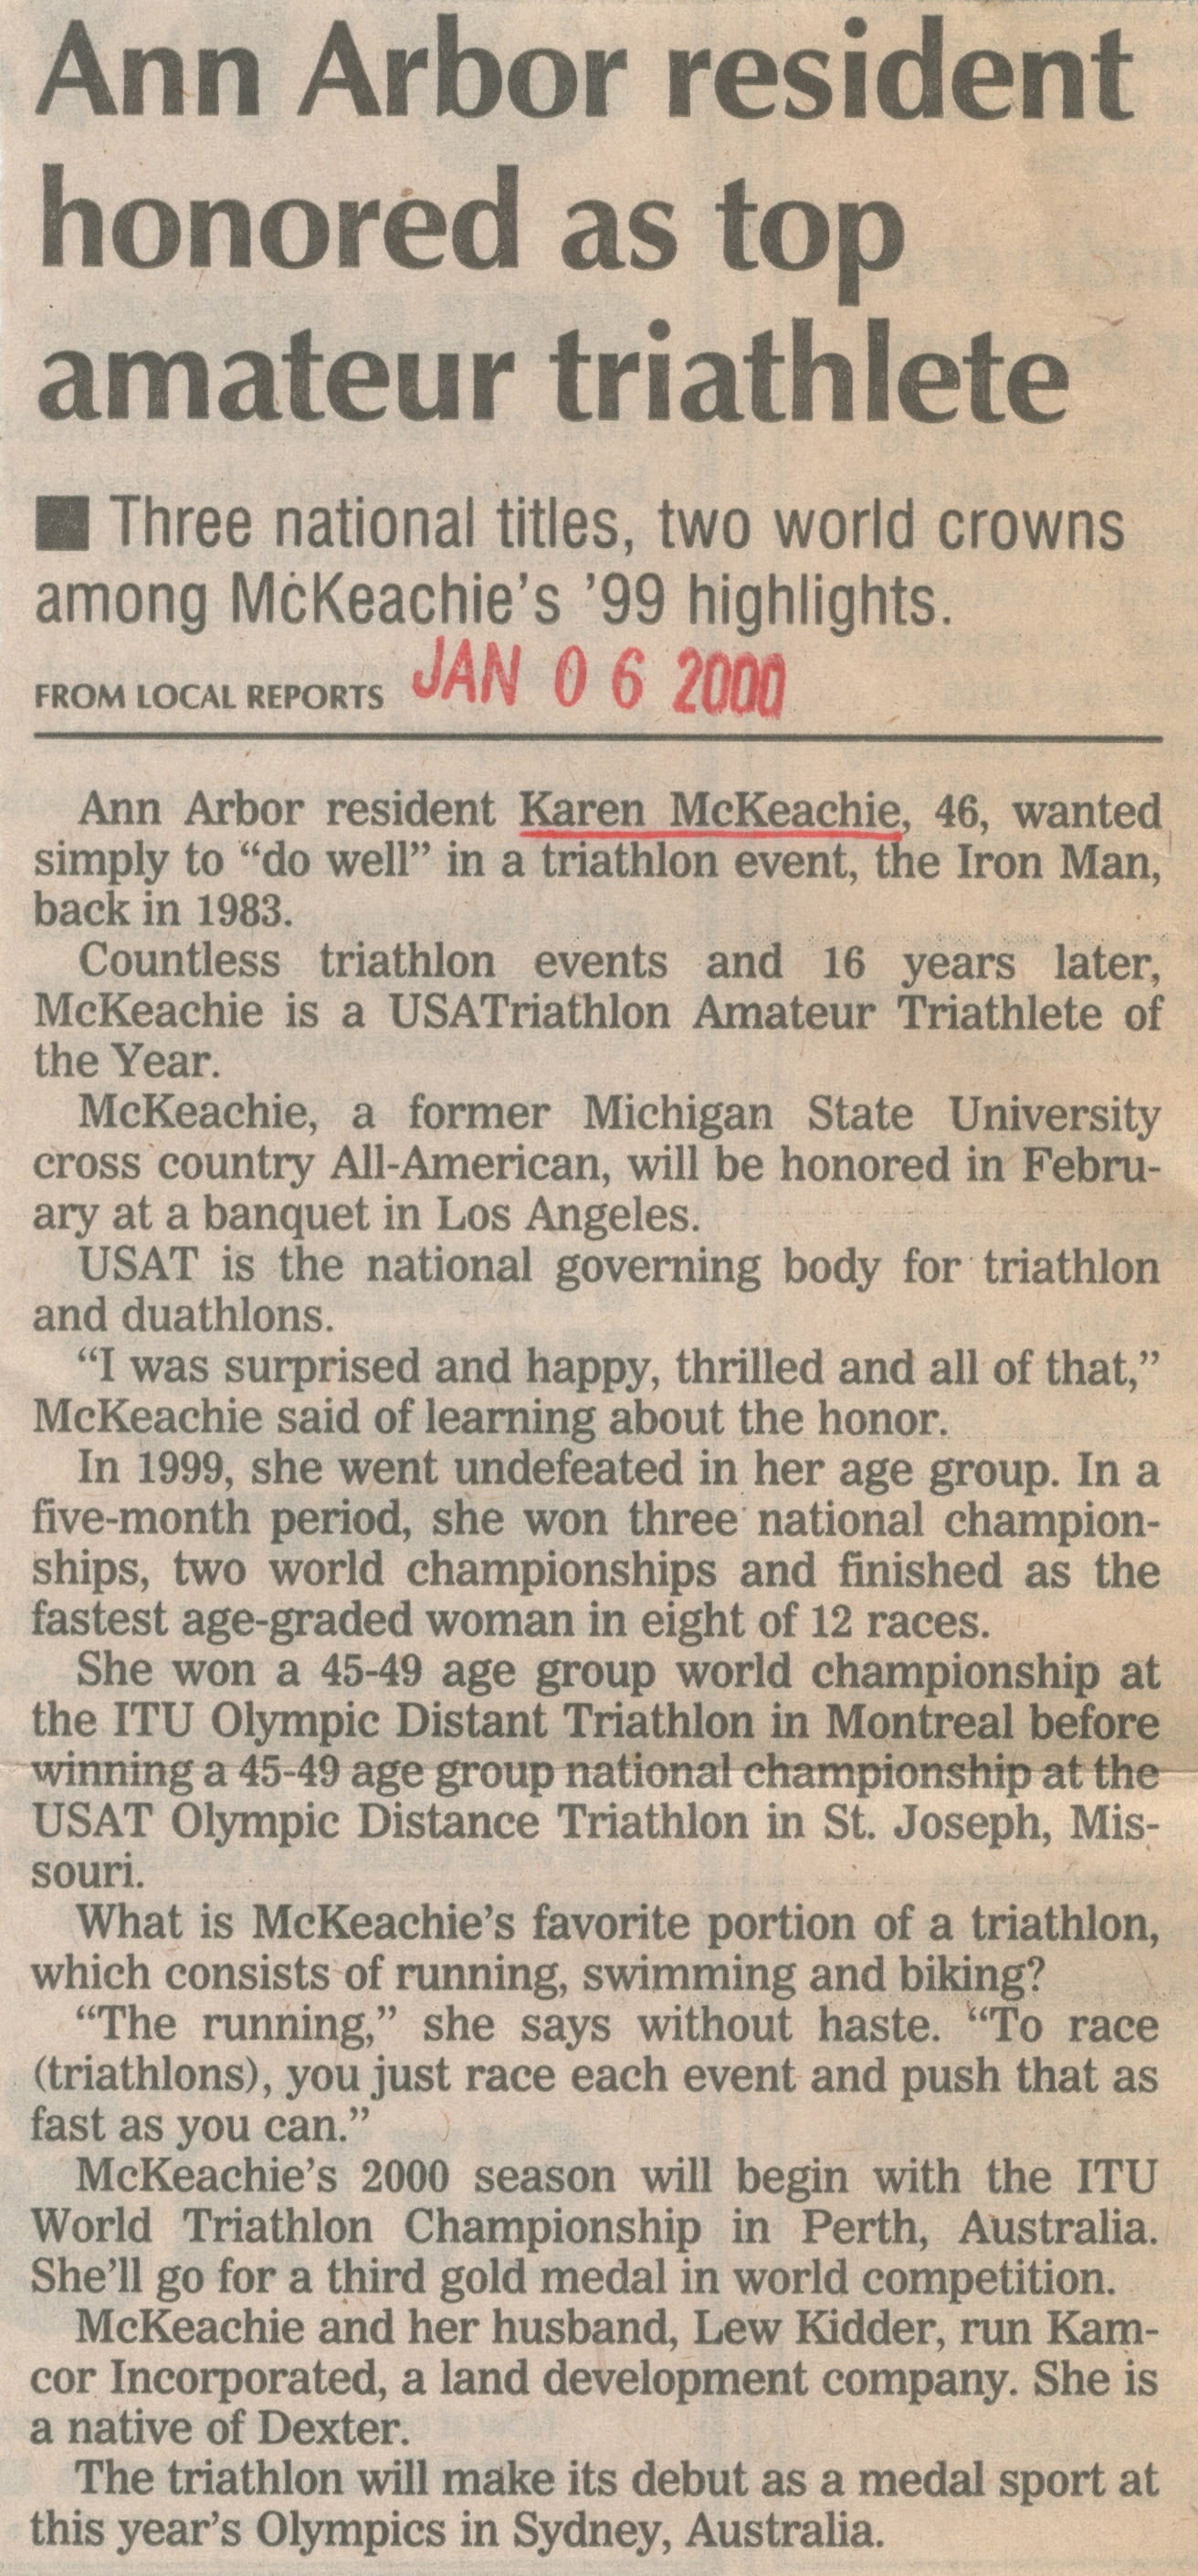 Ann Arbor Resident Honored As Top Amateur Triathlete image